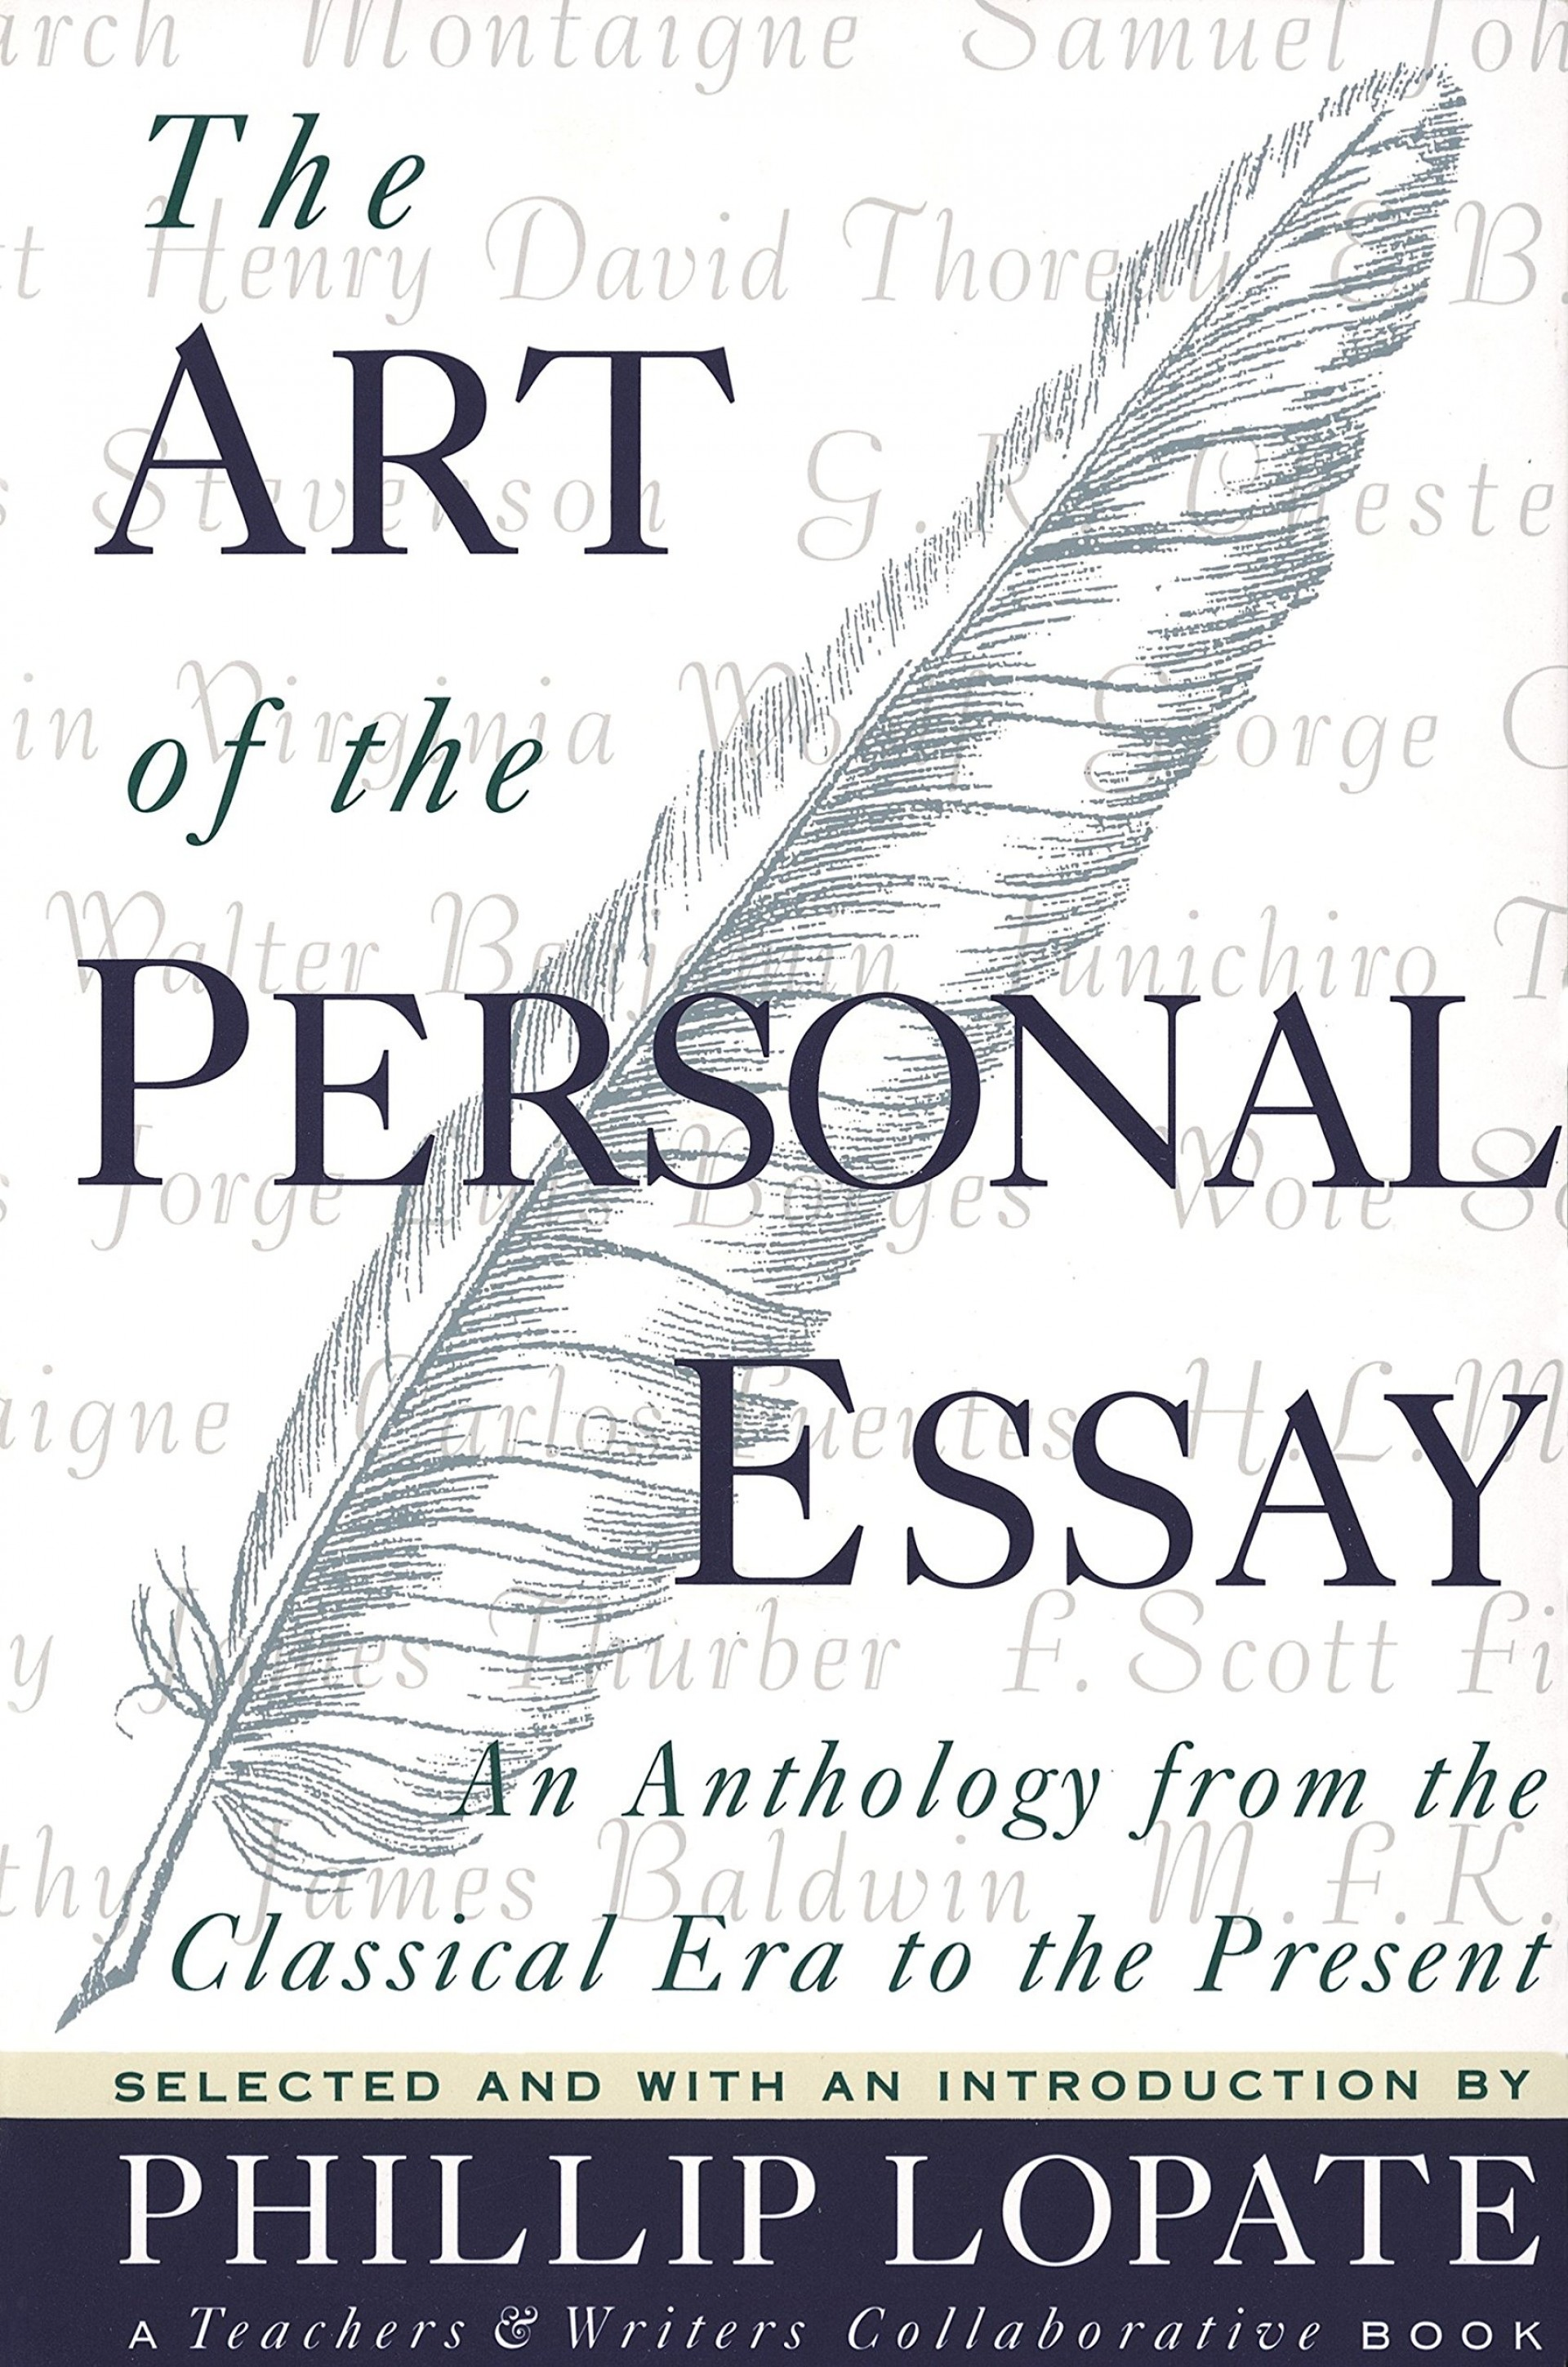 001 91bxbkzxmml The Art Of Personal Essay Beautiful Pdf Download Table Contents 1920